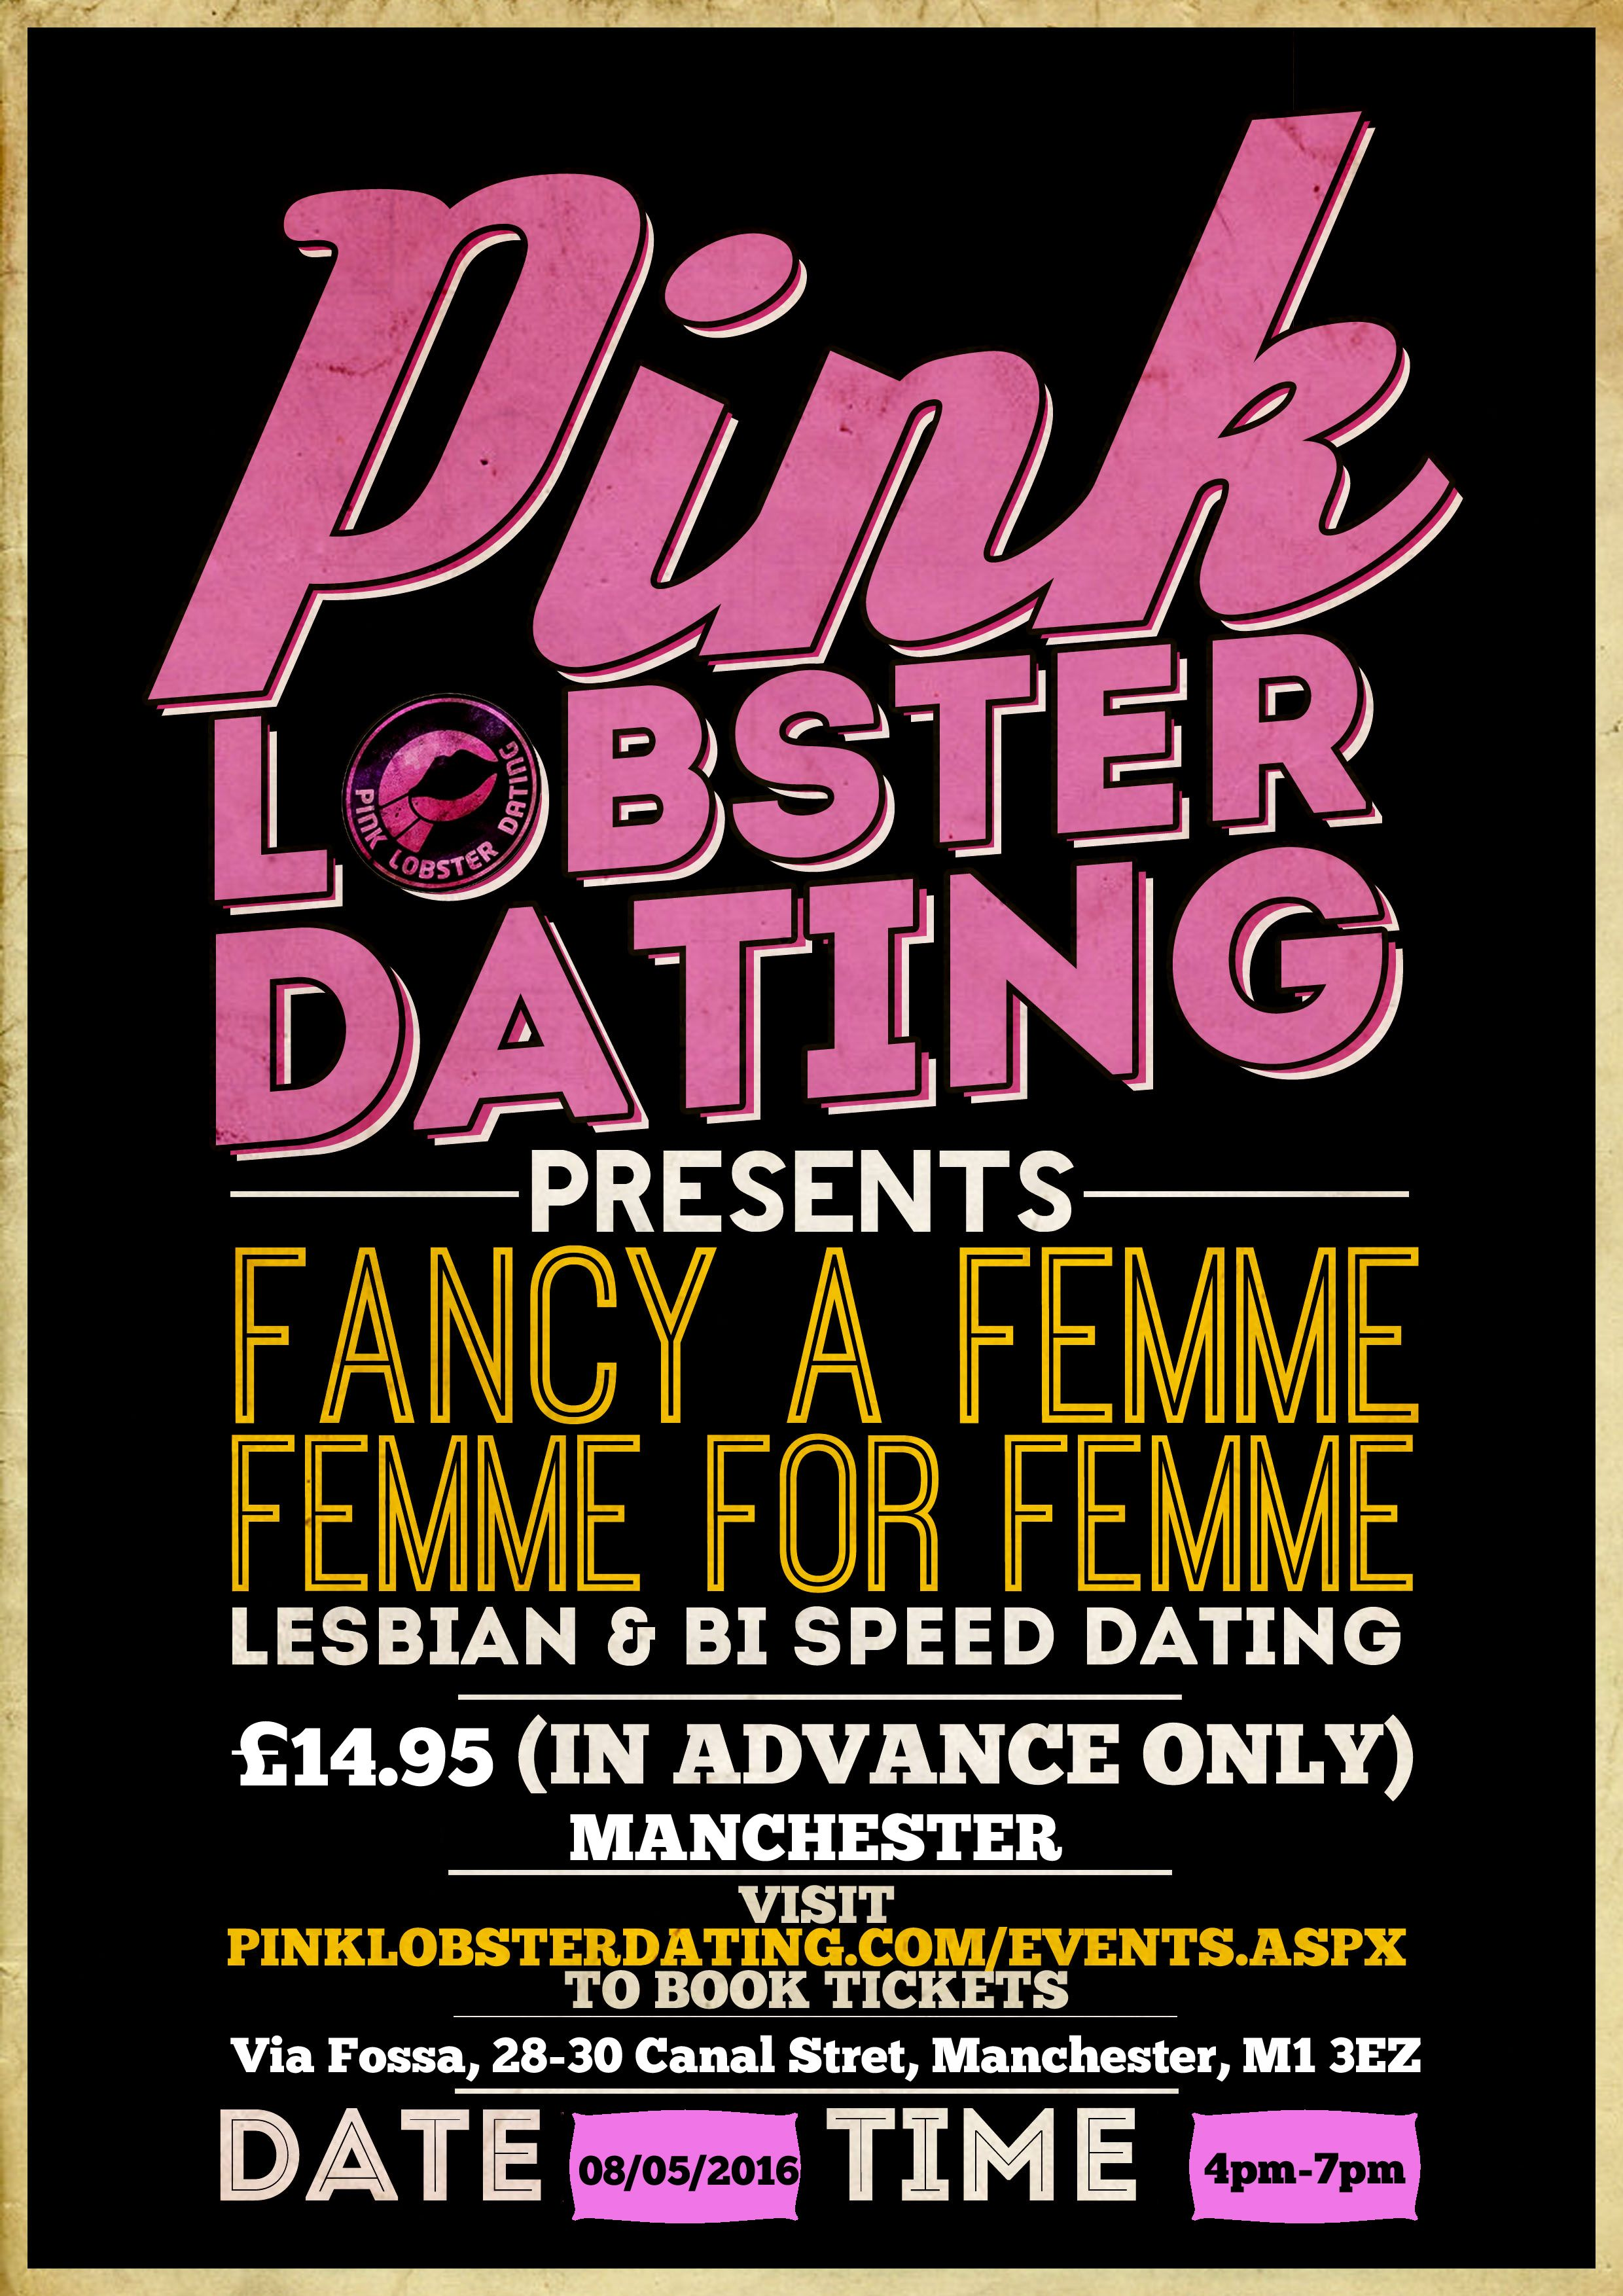 Pop Up Dating Events are aimed at cool, single professionals on the go!.